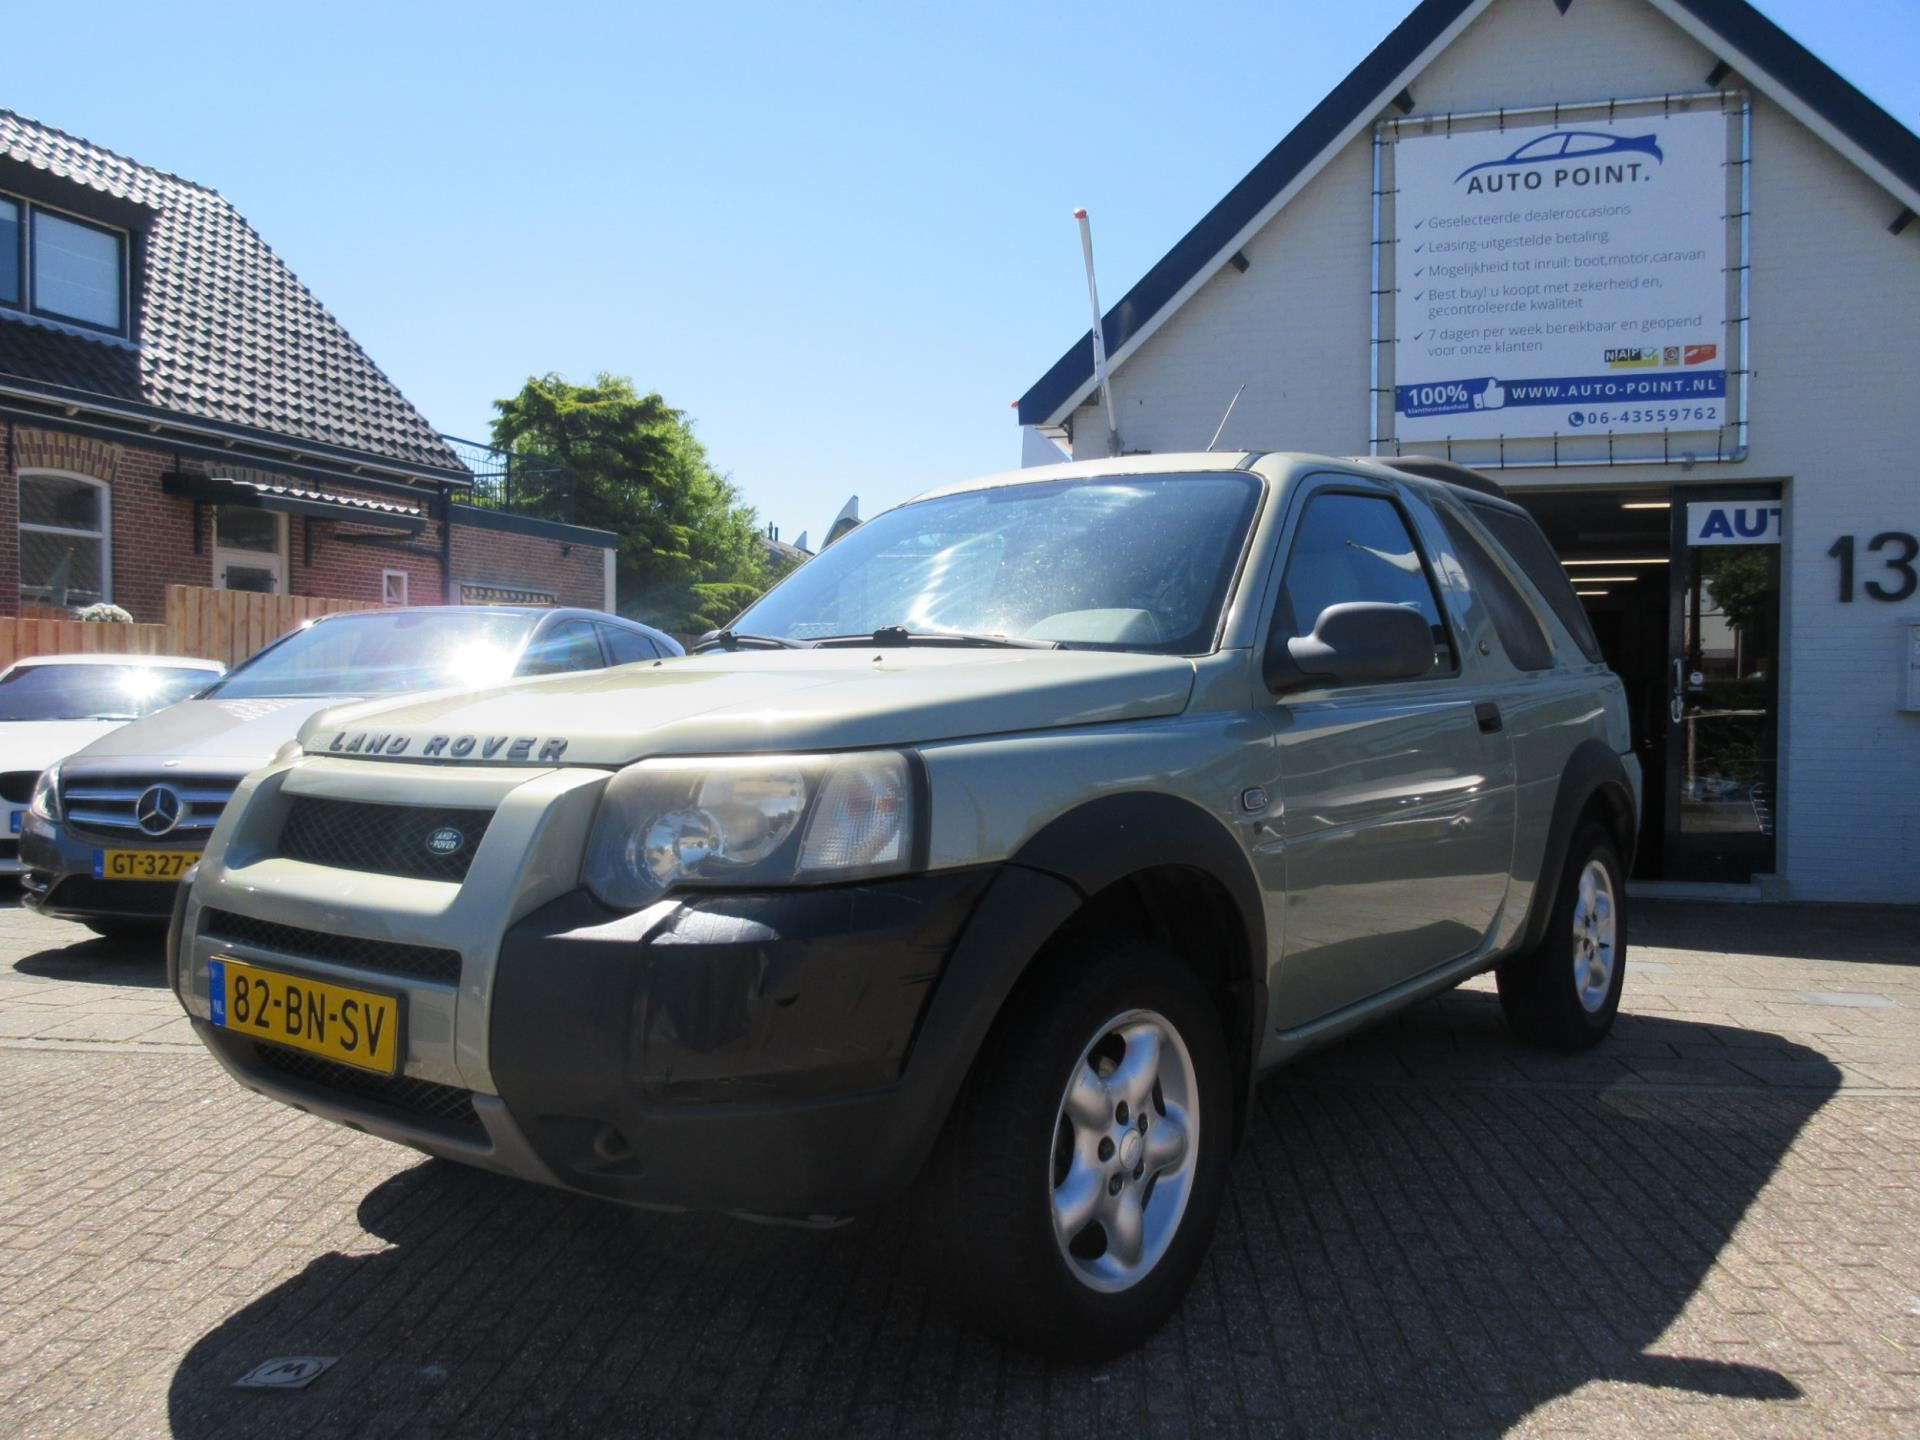 Land Rover Freelander Hardback occasion - Auto Point